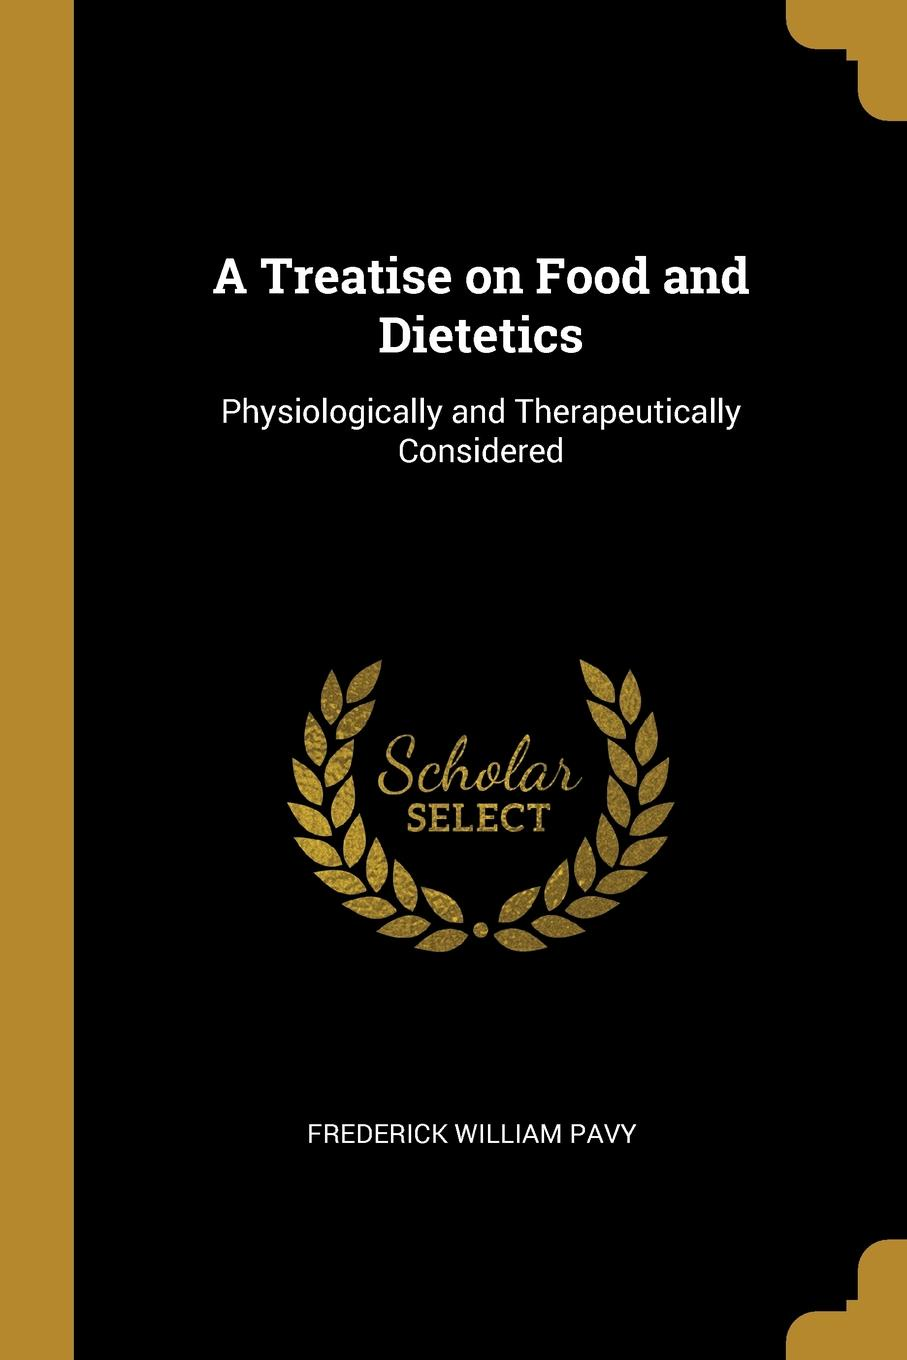 A Treatise on Food and Dietetics. Physiologically and Therapeutically Considered